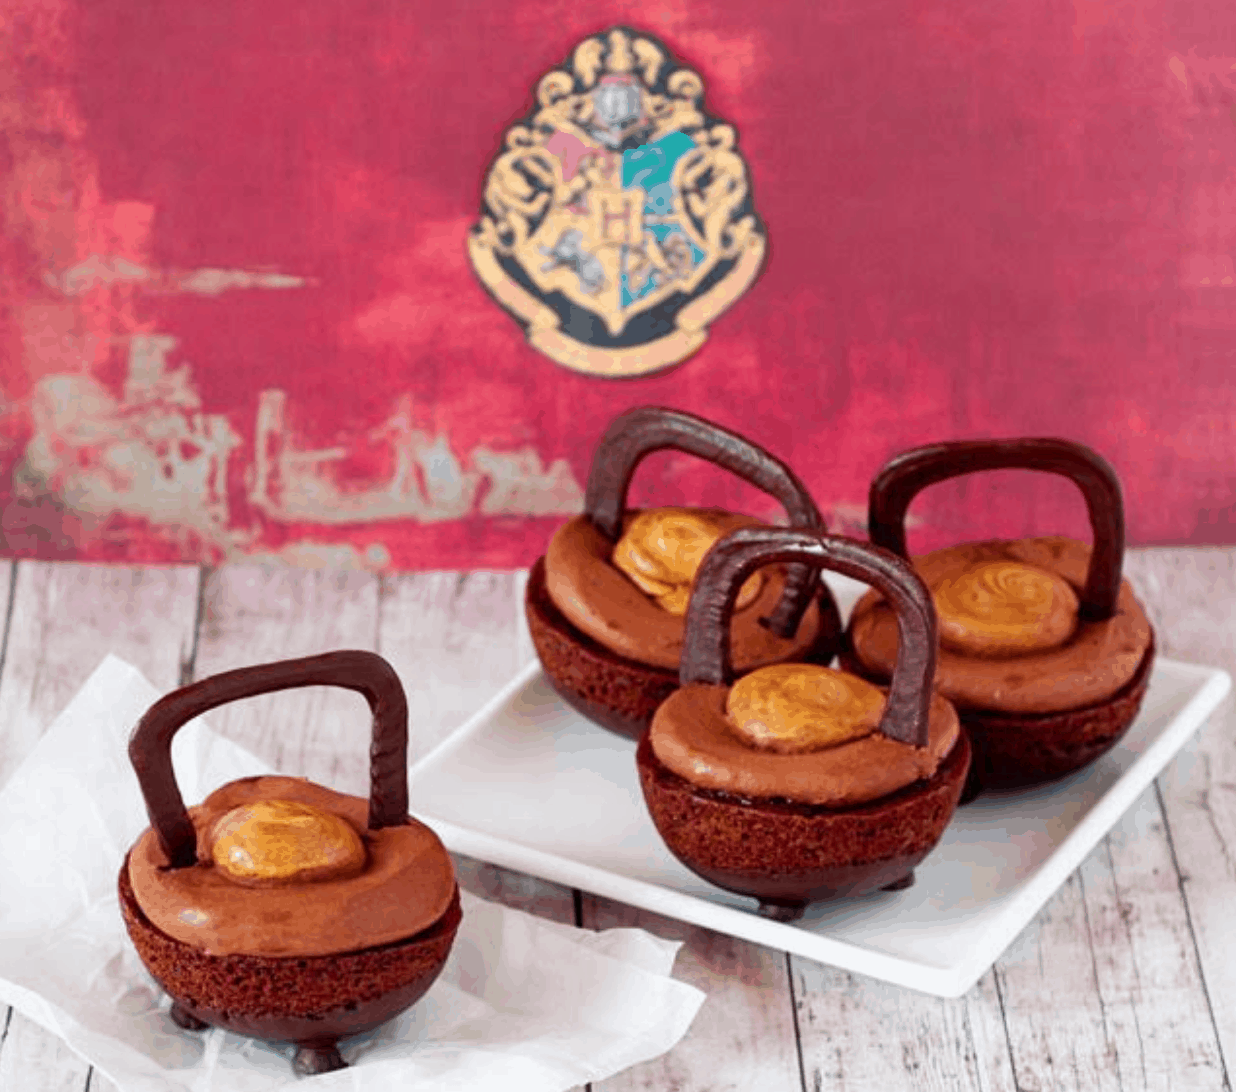 Caldeirões de chocolate de Harry Potter.